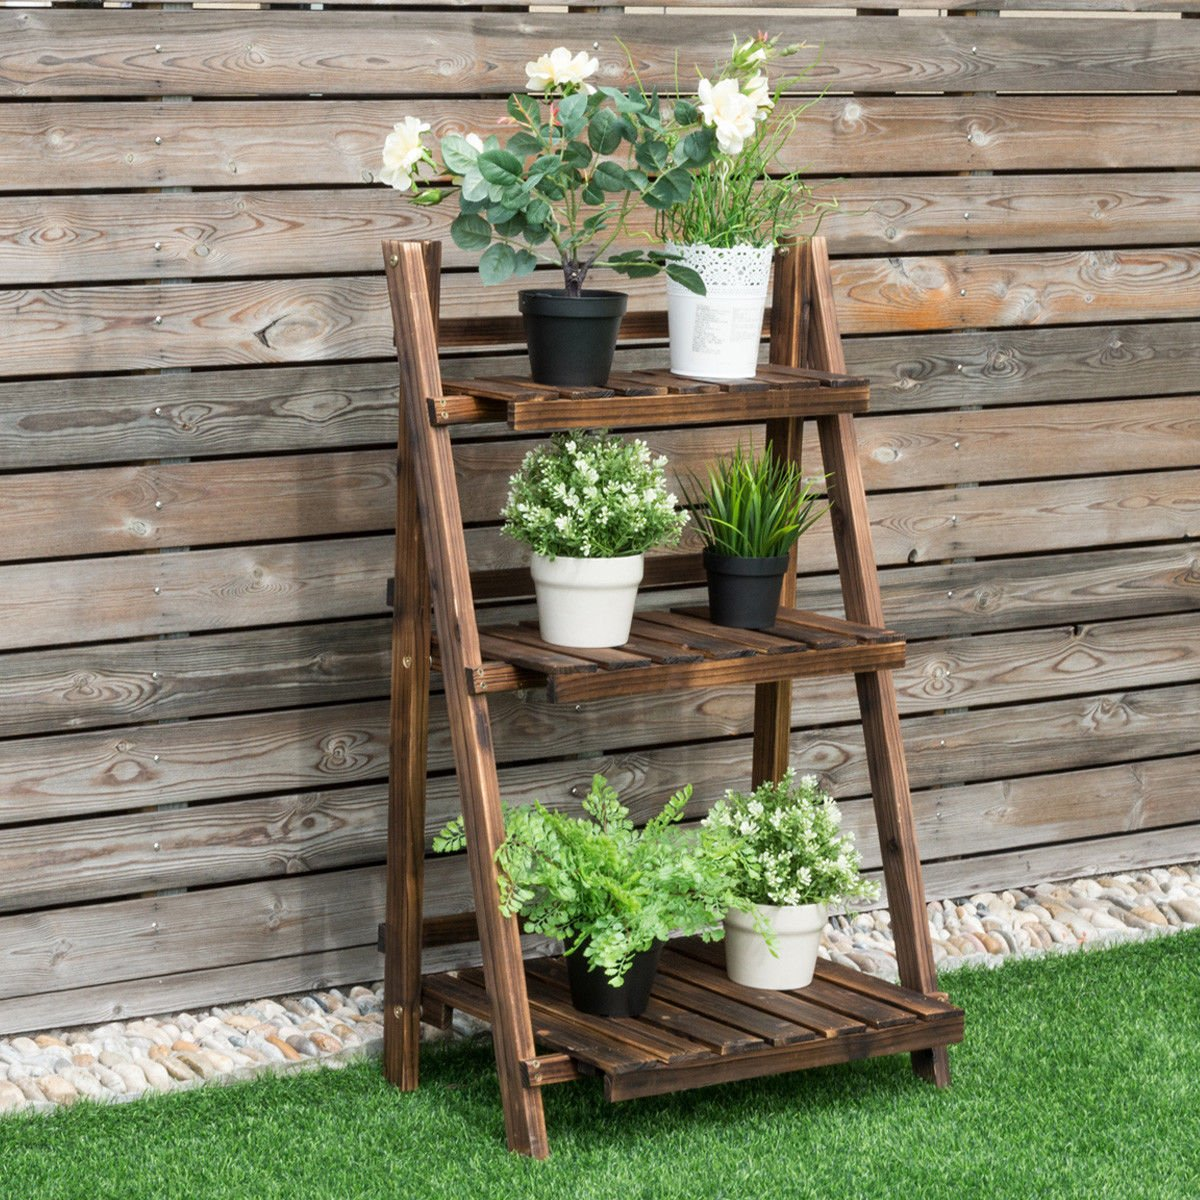 Giantex 3 Tier Folding Wooden Plant Stand with Pot Shelf Stand Display Rack for Indoor Outdoor Garden Greenhouse, 24'' x 15'' x 37'' by Giantex